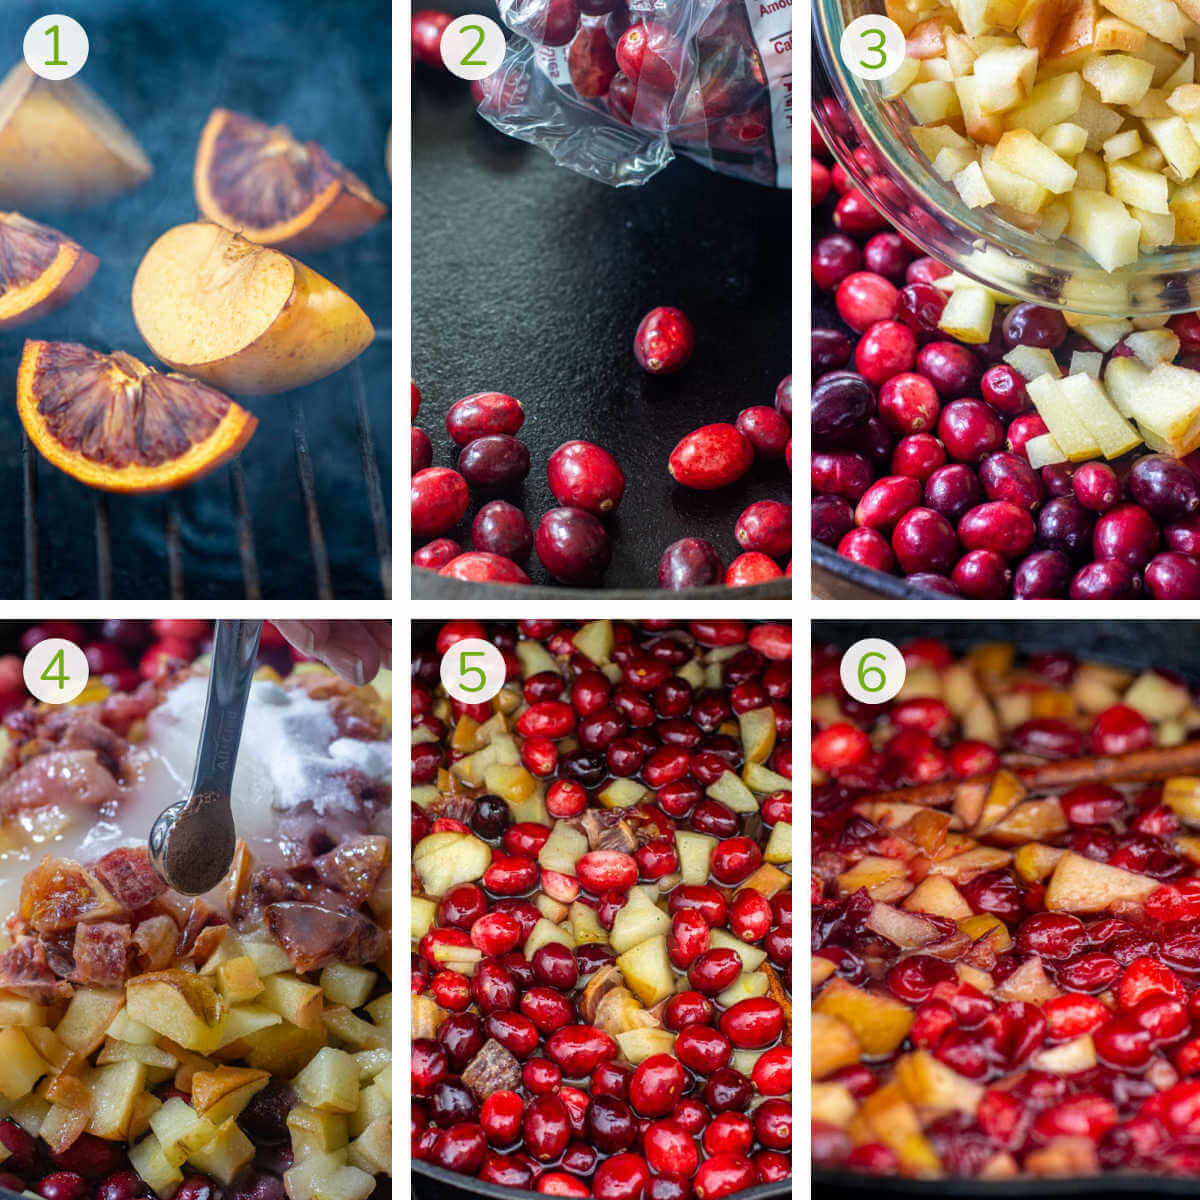 six process shots showing how to smoke the fruit, combine it all in a skillet, and grill it until it thickens.